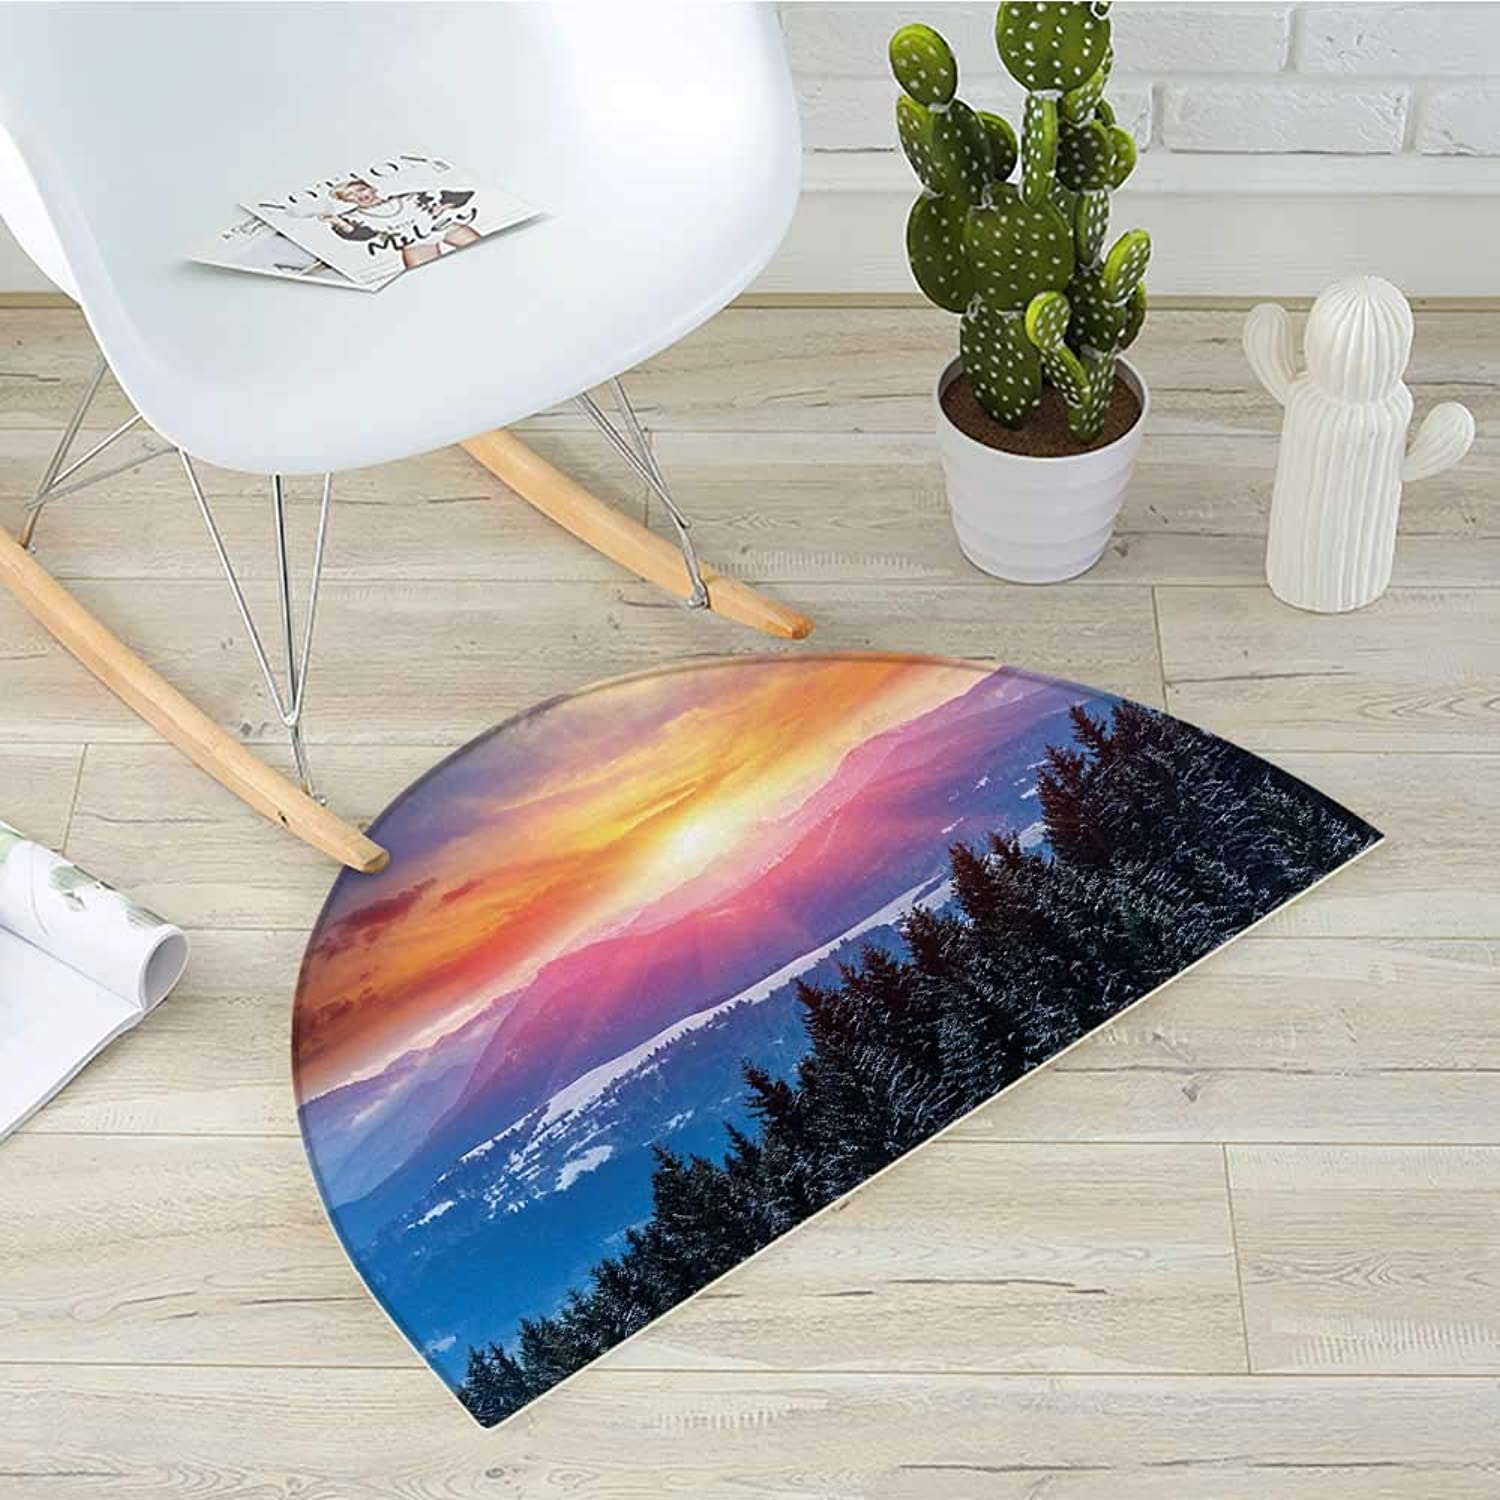 Winter Semicircular CushionSunset in Mountains with Hazy Lights with Magical Dawn Horizon Theme Entry Door Mat H 39.3  xD 59  orange bluee